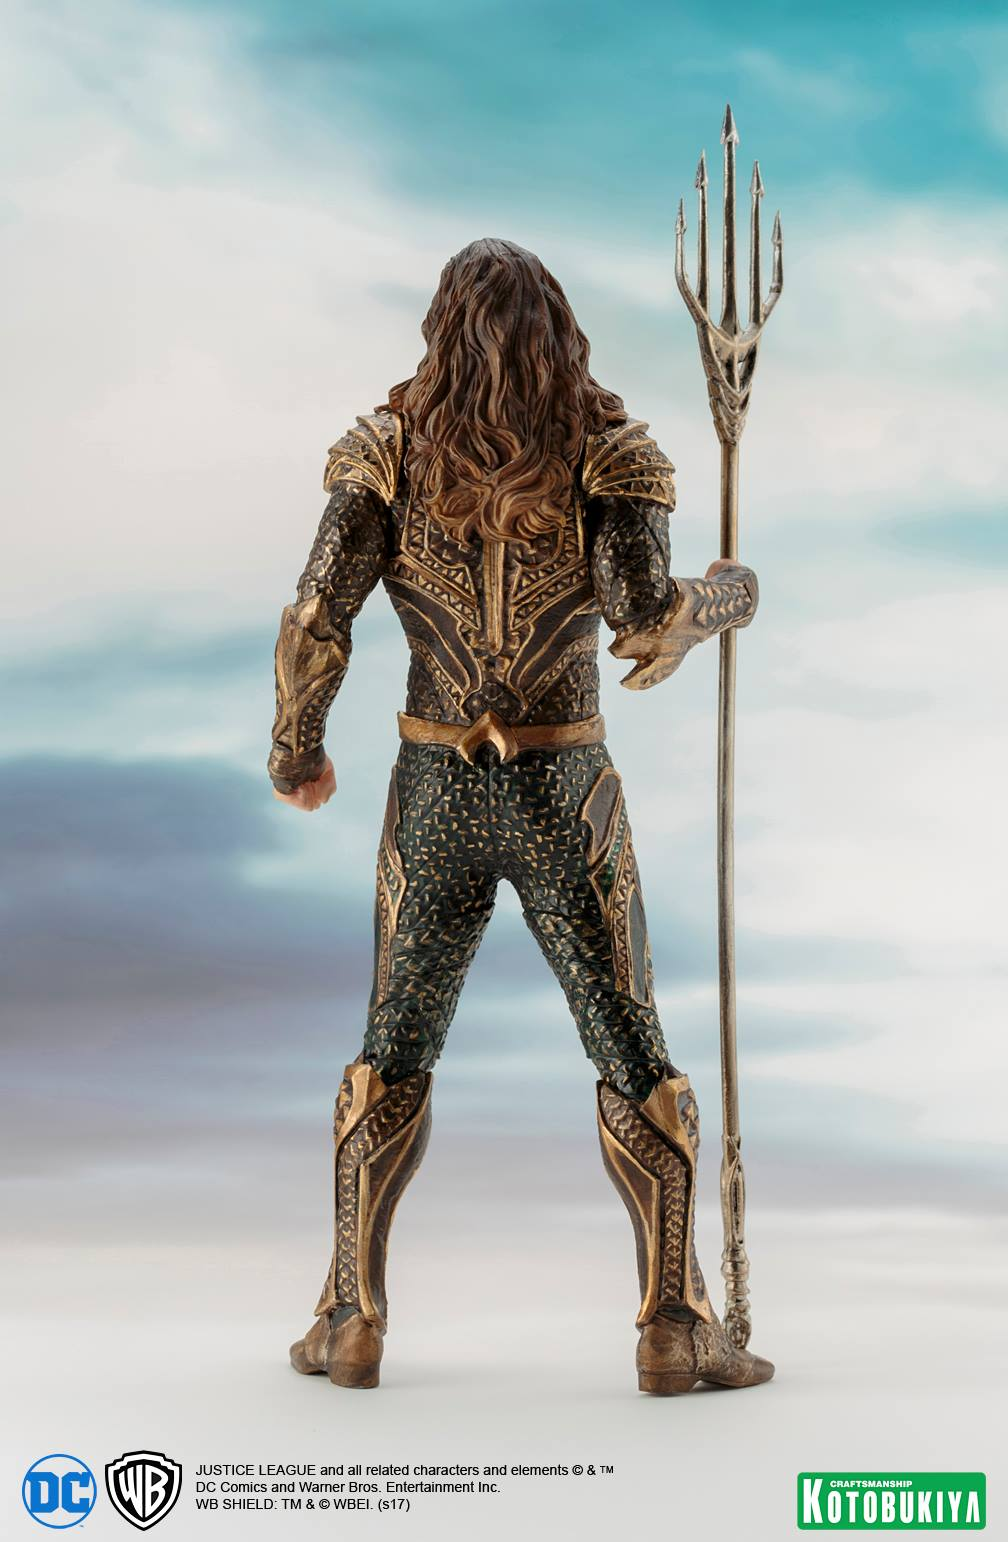 Kotobukiya - ARTFX+ - Justice League Movie - Aquaman